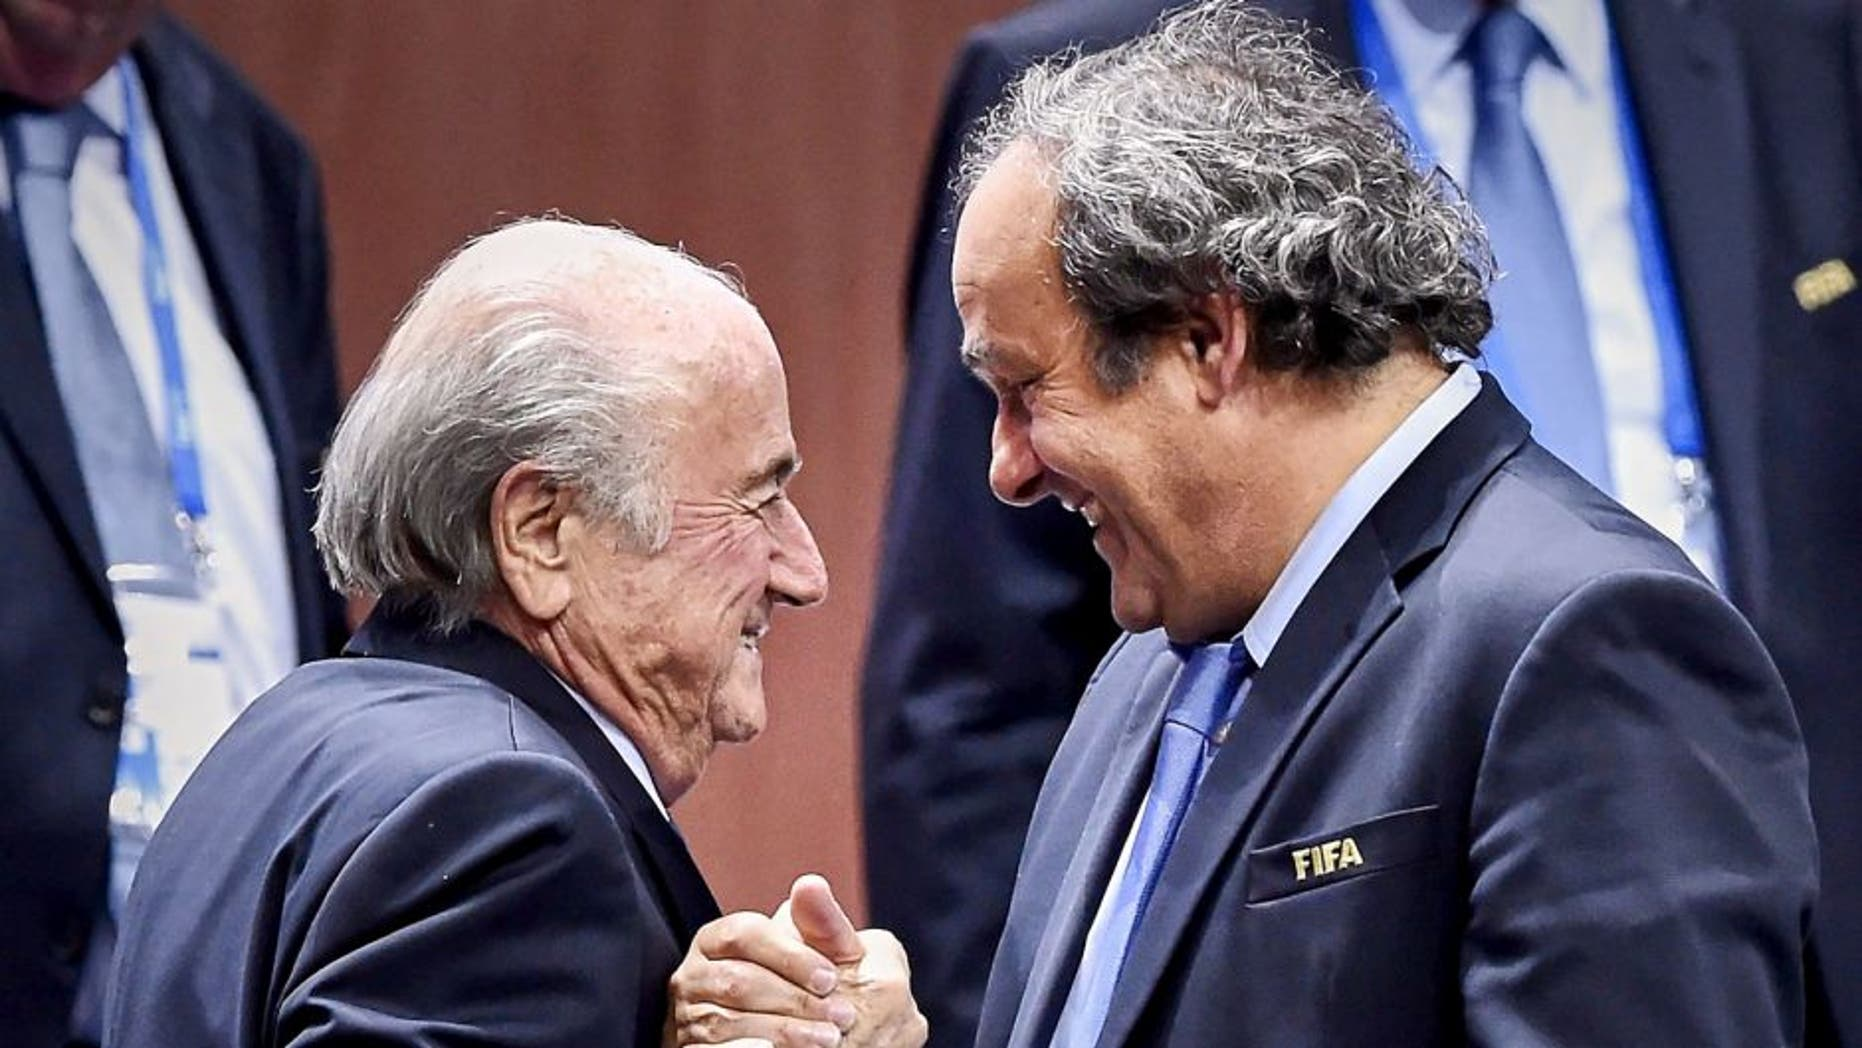 FIFA President Sepp Blatter (Foreground-L) shakes hands with UEFA president Michel Platini after being re-elected following a vote to decide on the FIFA presidency in Zurich on May 29, 2015. Sepp Blatter won the FIFA presidency for a fifth time after his challenger Prince Ali bin al Hussein withdrew just before a scheduled second round. AFP PHOTO / MICHAEL BUHOLZER (Photo credit should read MICHAEL BUHOLZER/AFP/Getty Images)